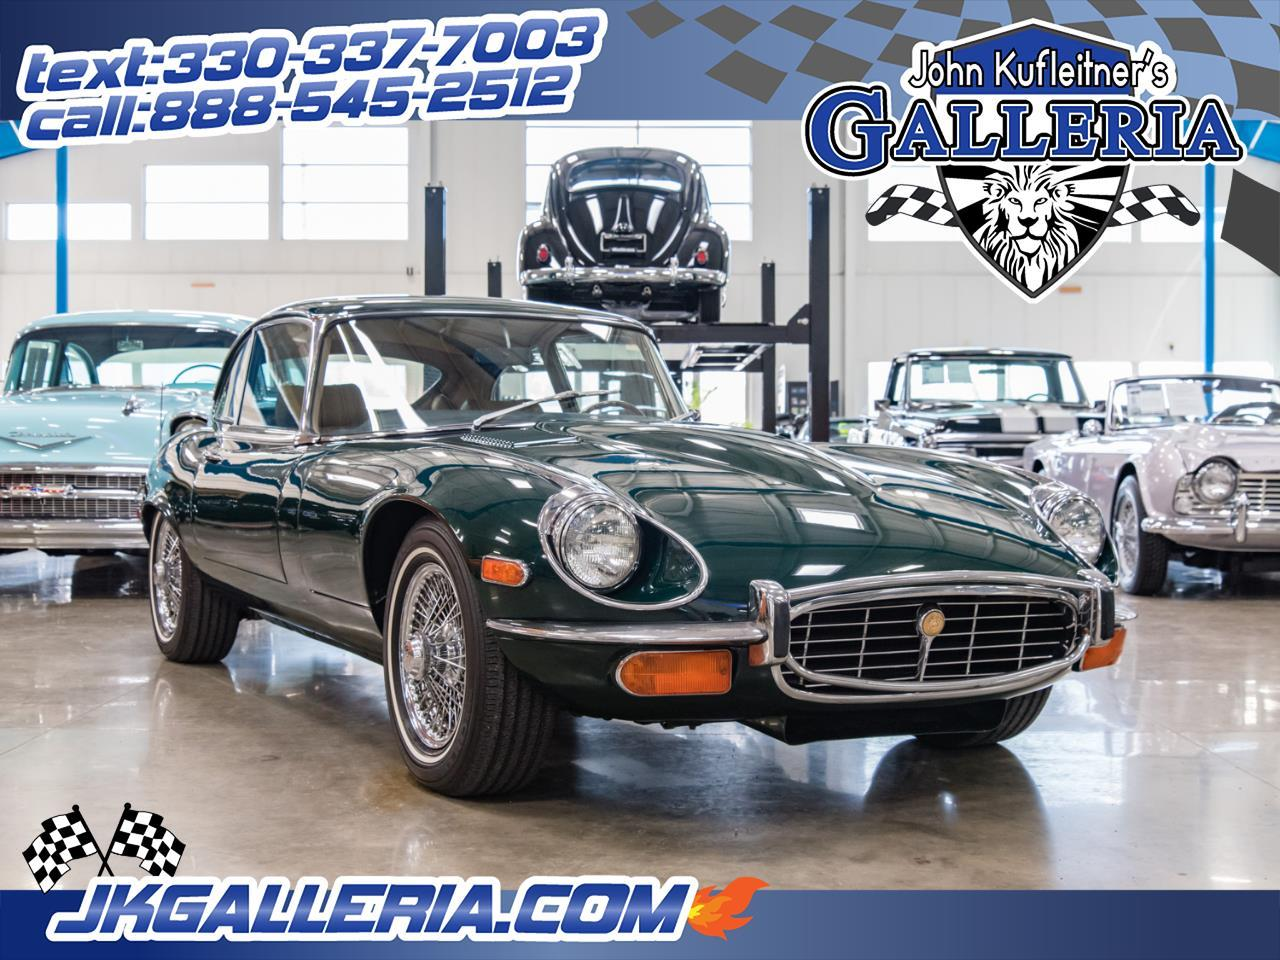 Large Picture of '72 Jaguar E-Type located in Salem Ohio - $54,800.00 Offered by John Kufleitner's Galleria - Q55P